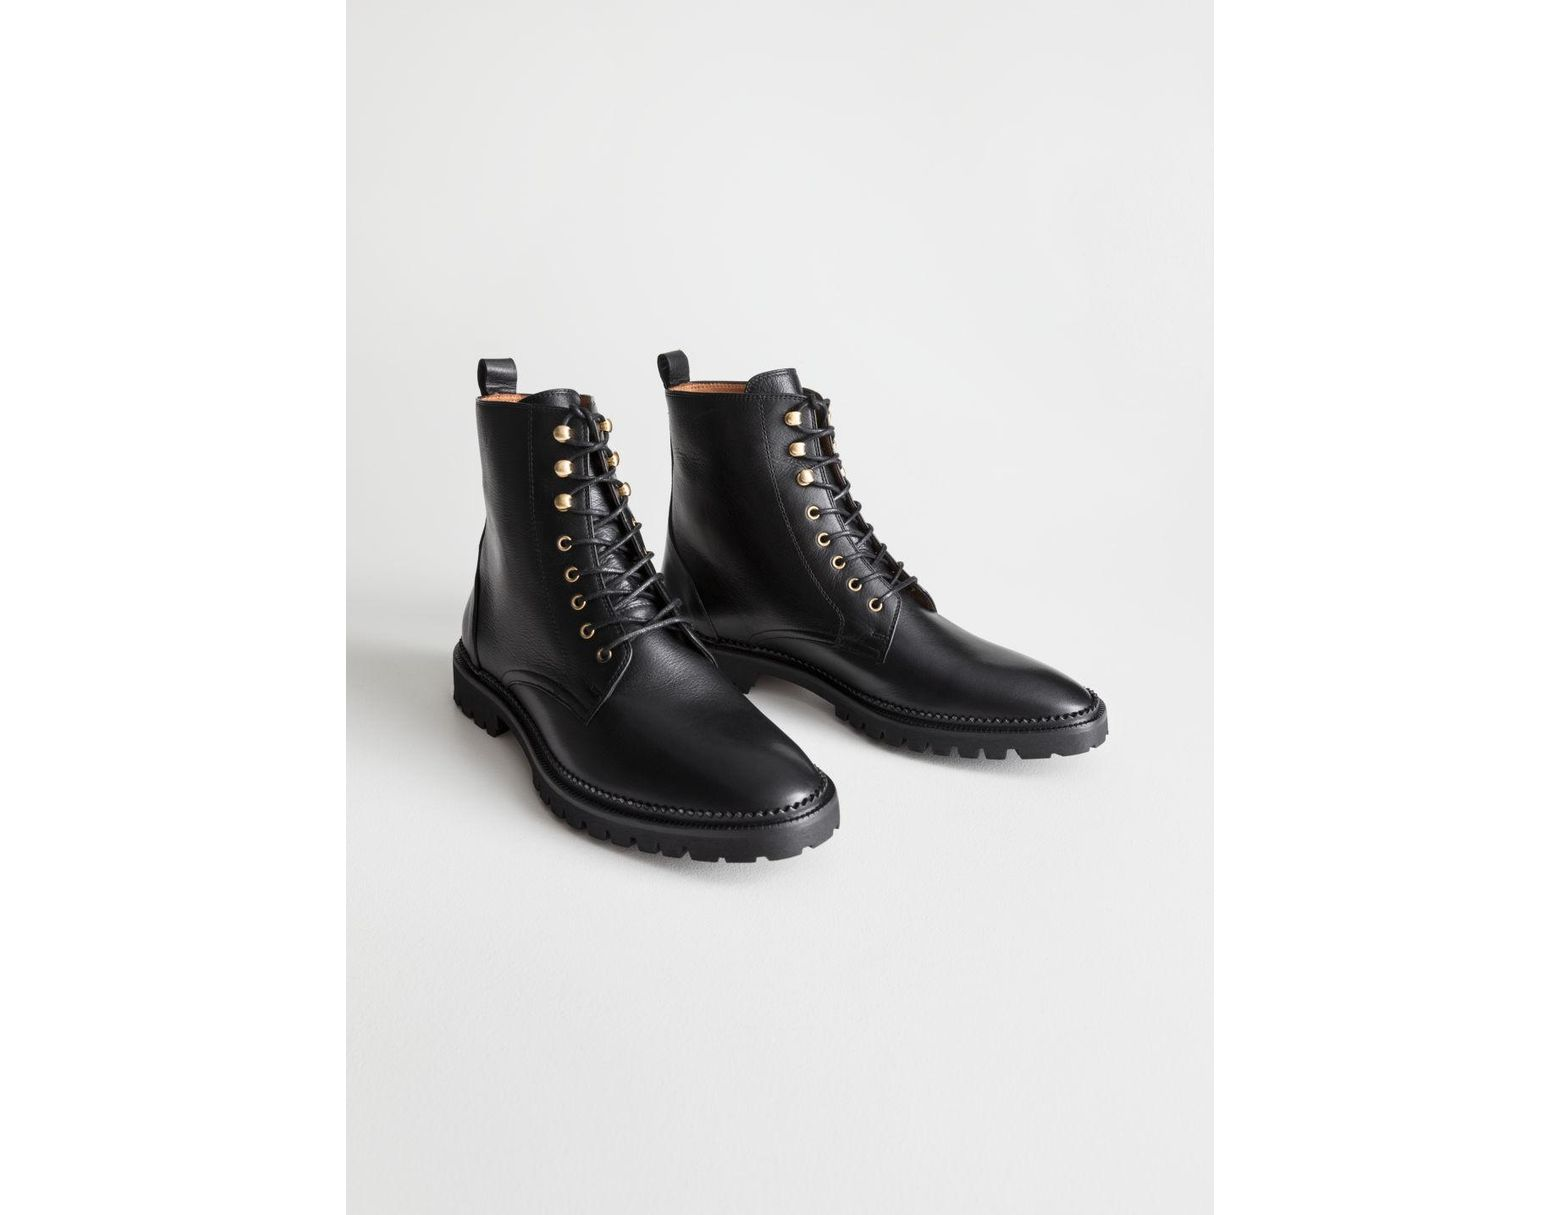 adf241be6 & Other Stories Lace-up Leather Boots in Black - Save 30% - Lyst